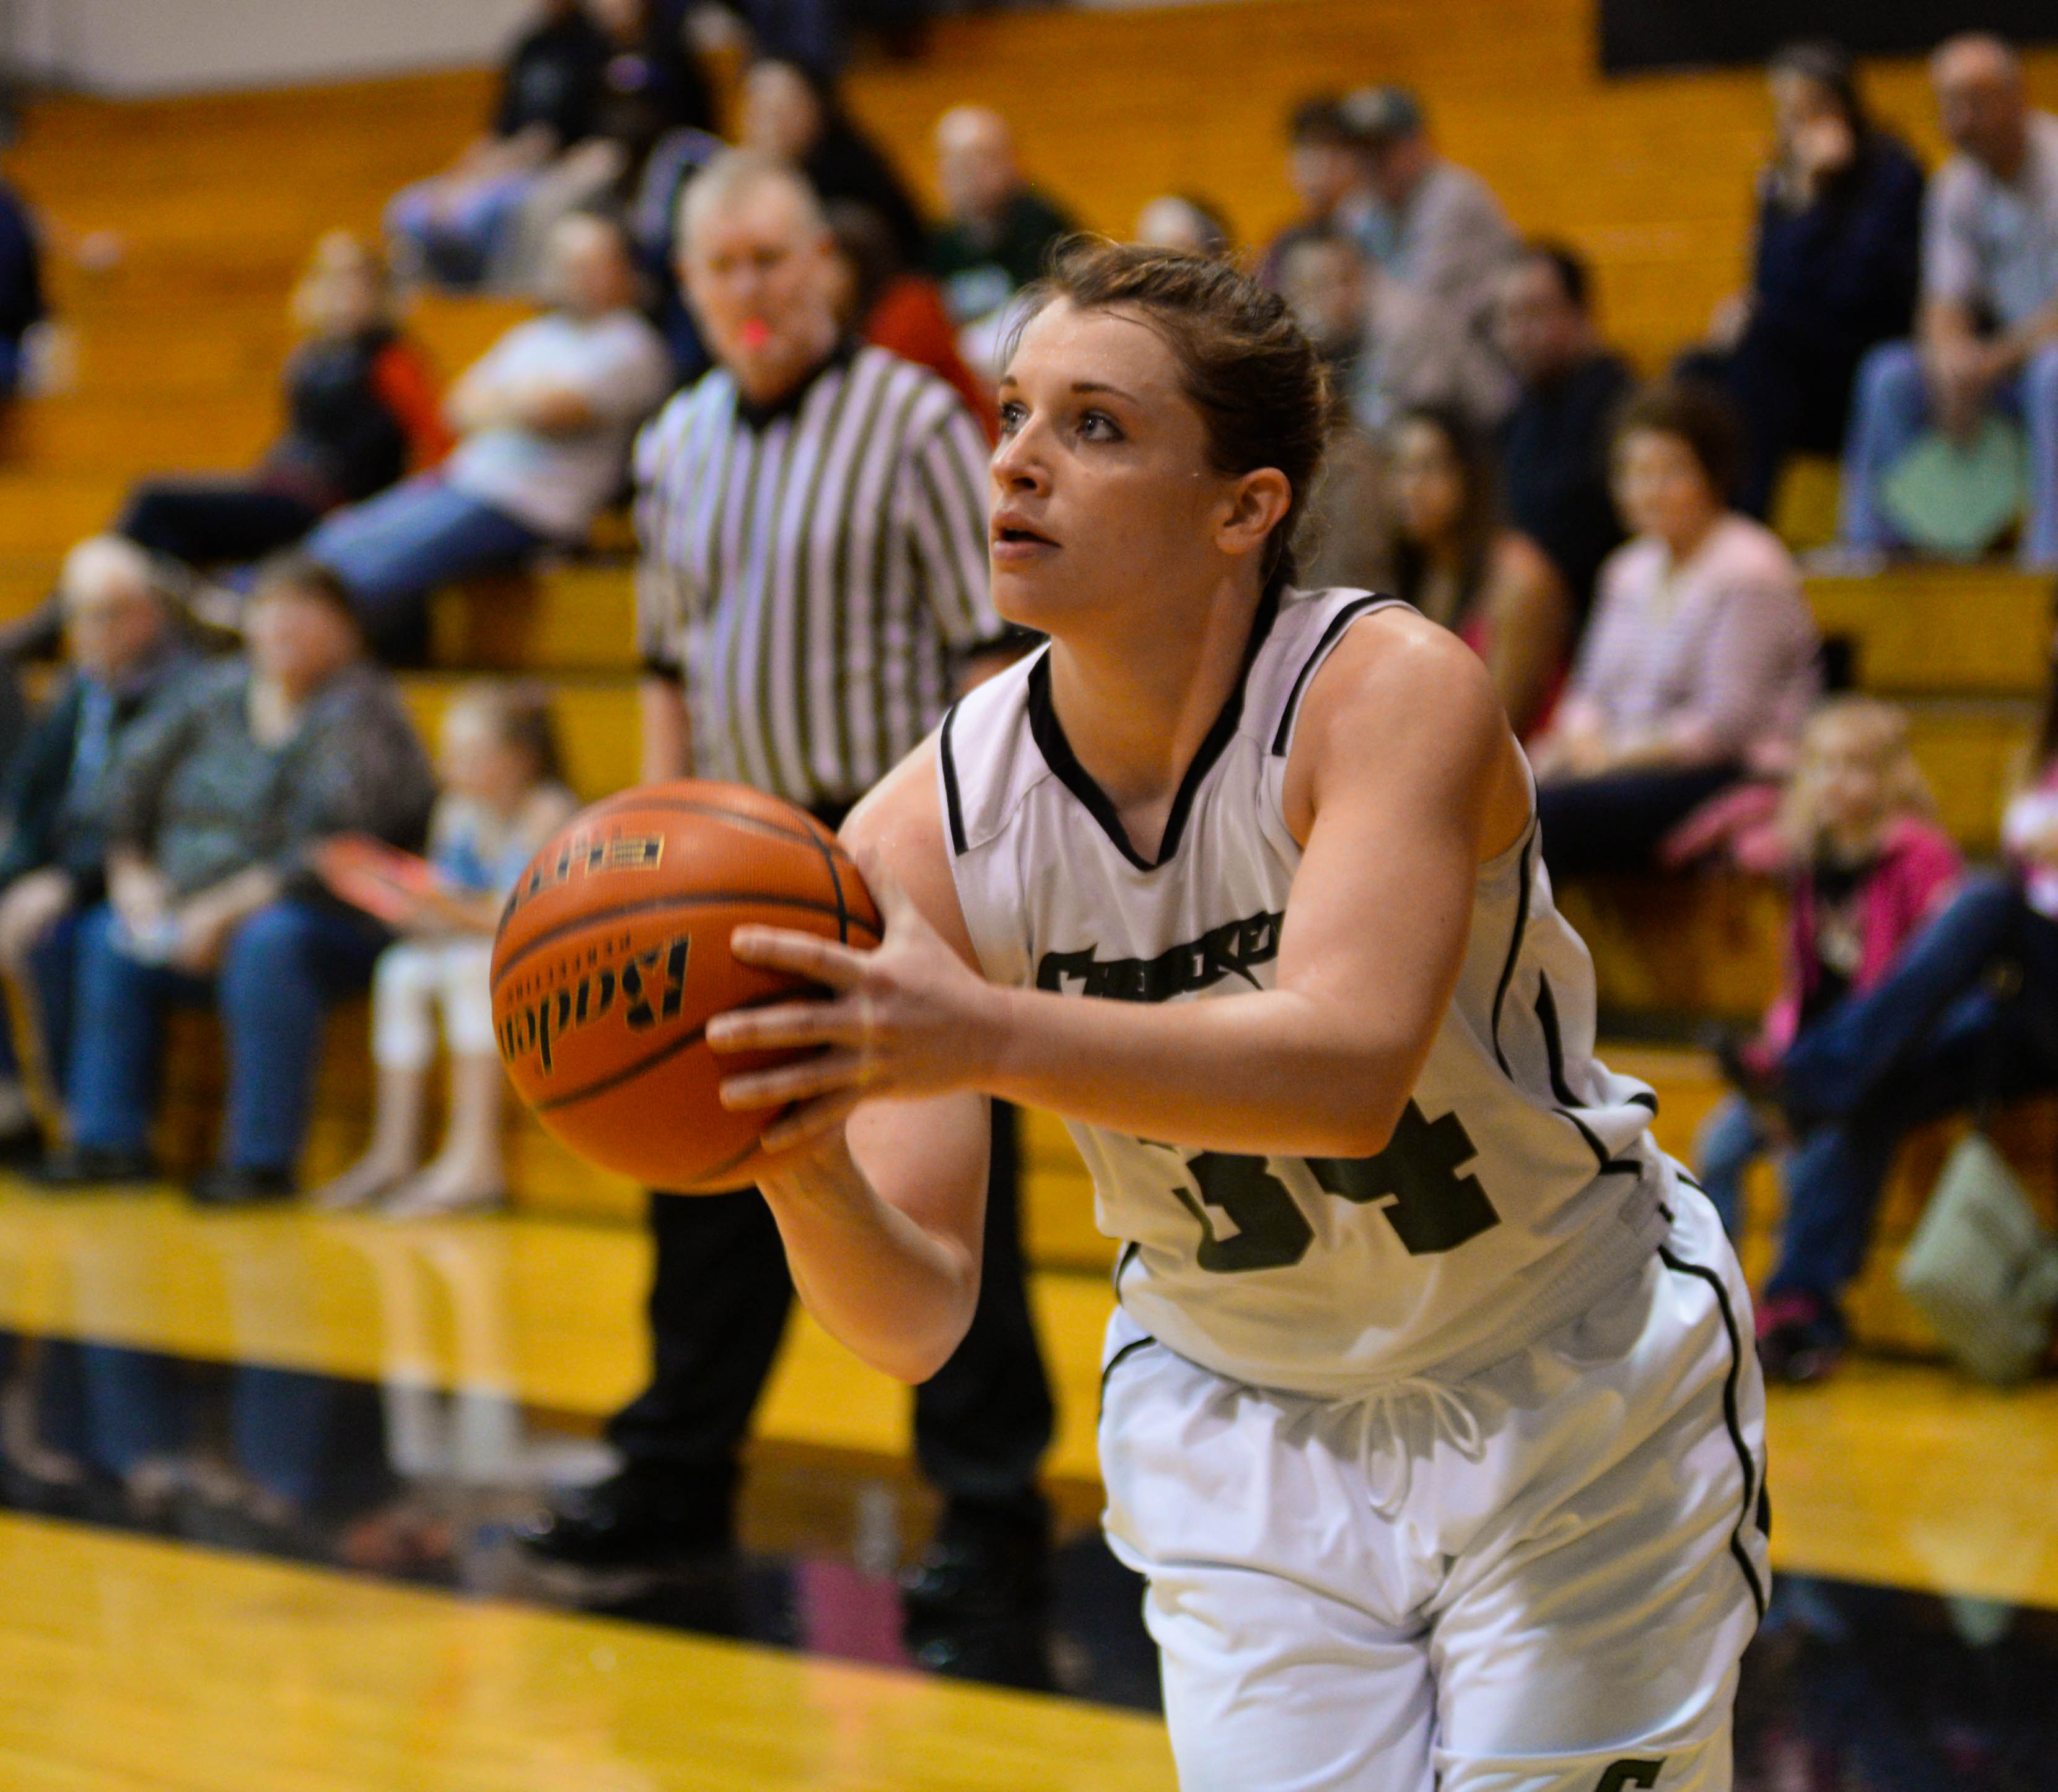 Jessica Darras, second-year wing sets up for a shot from the perimeter Saturday against the Umpqua Riverhawks.